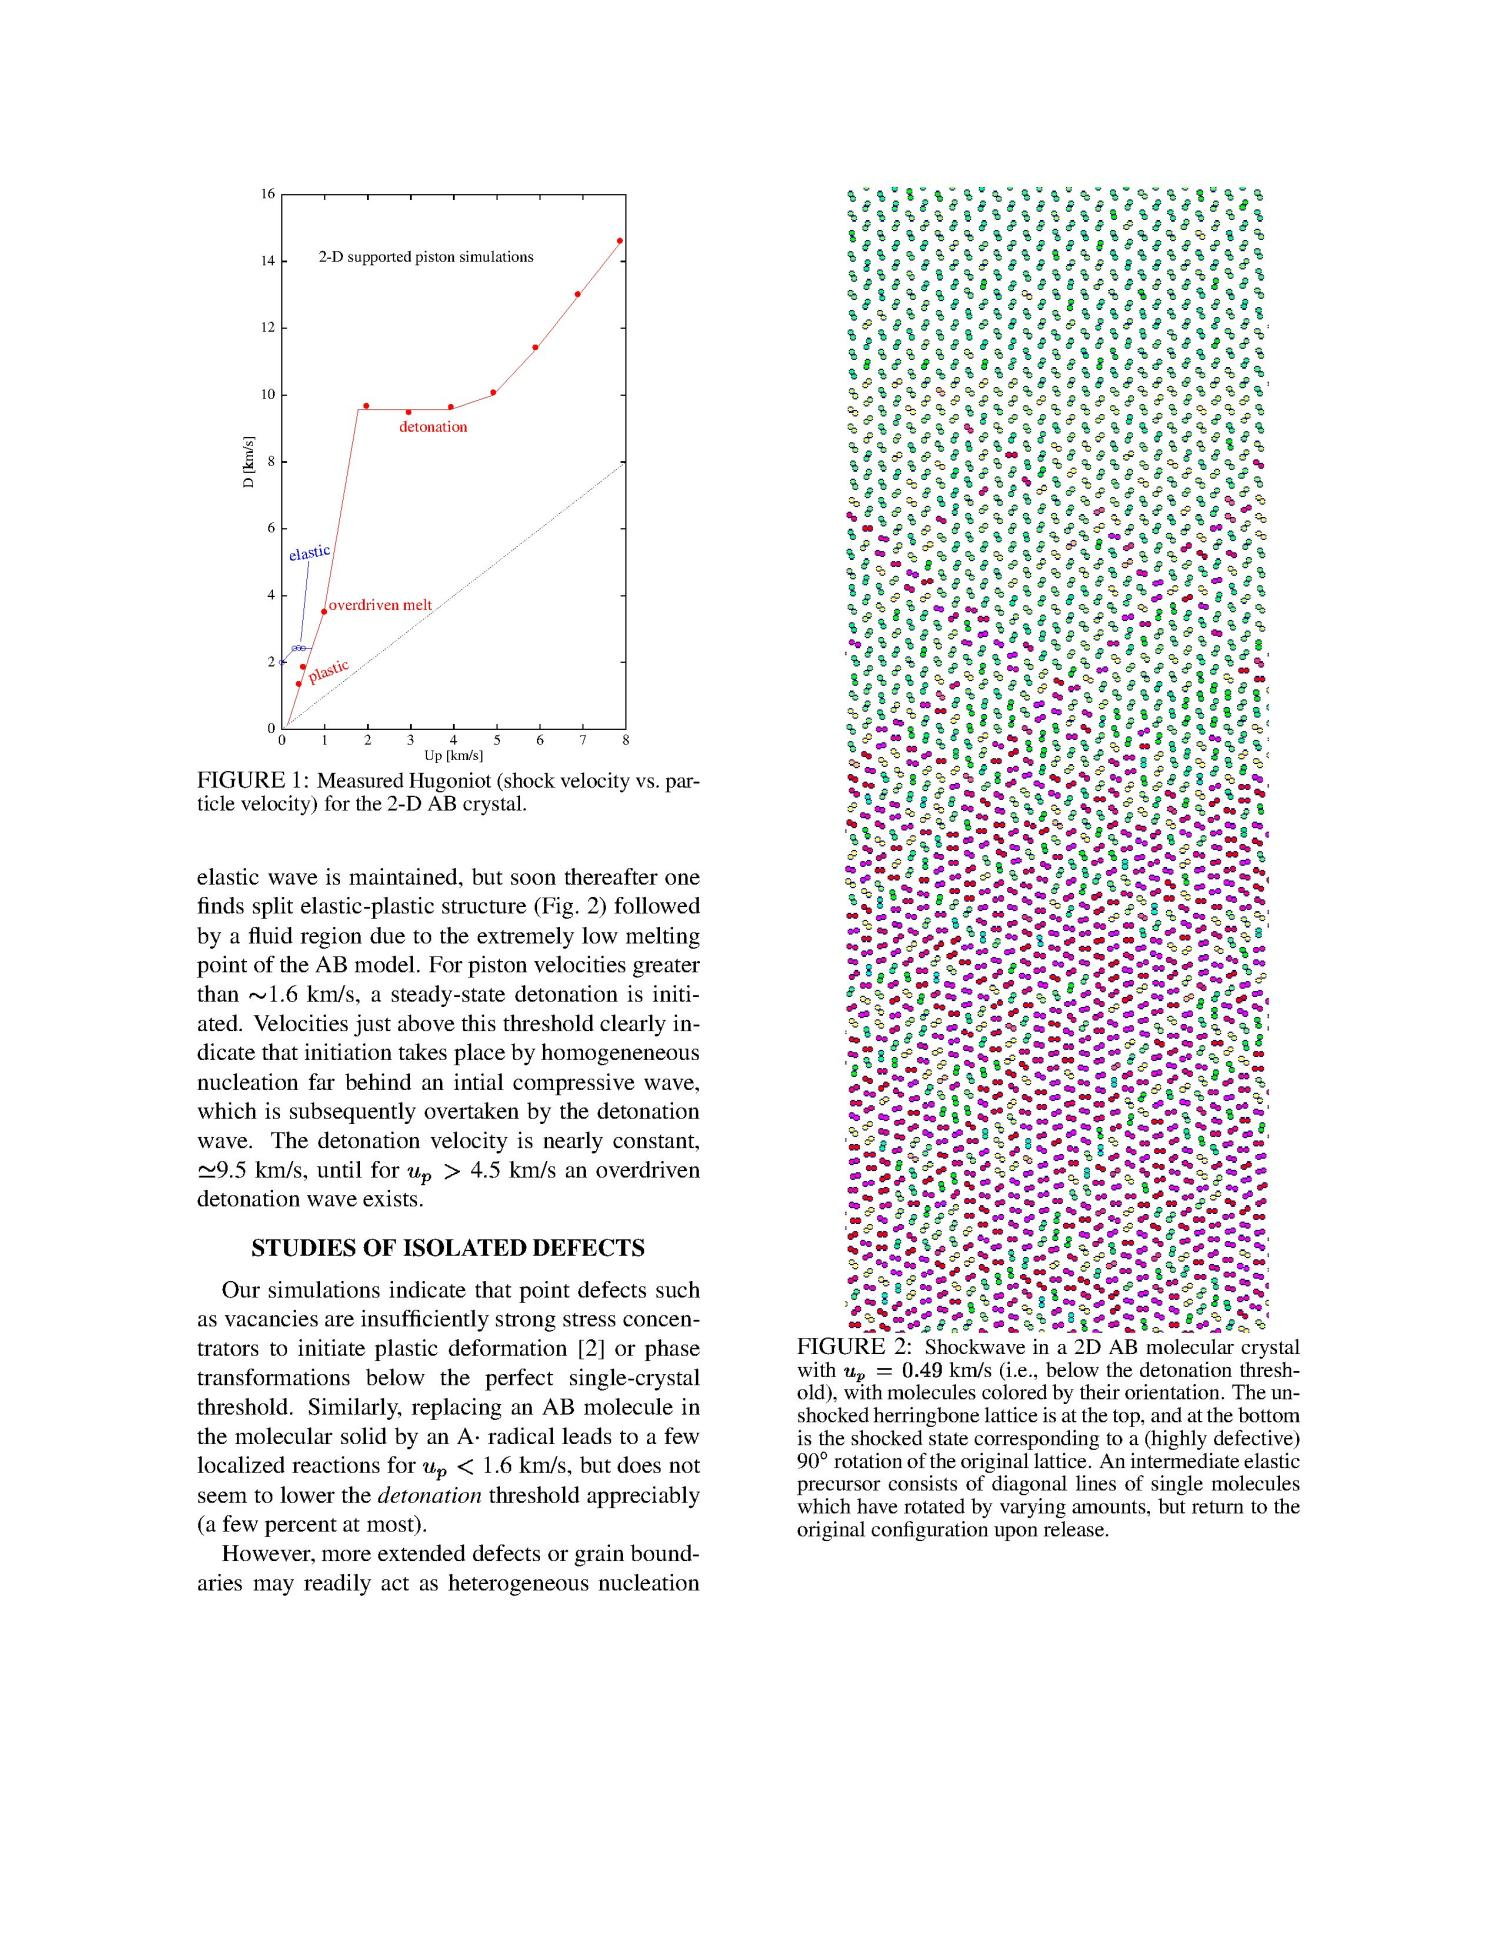 LARGE-SCALE MOLECULAR DYNAMICS SIMULATIONS OF SHOCK-INDUCED PLASTICITY, PHASE TRANSFORMATIONS, AND DETONATION                                                                                                      [Sequence #]: 4 of 7